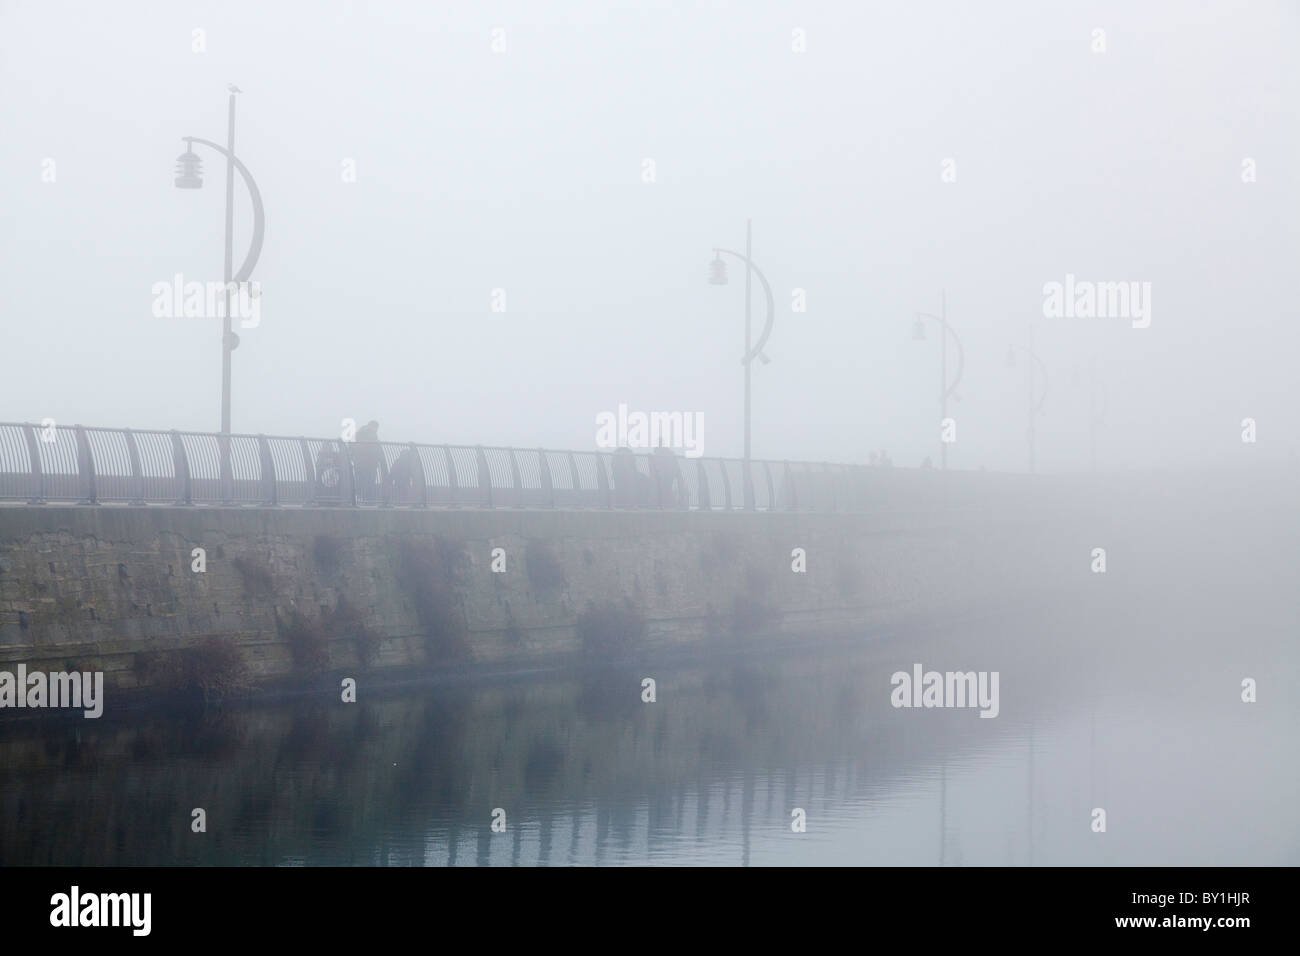 people walking on sea wall on a foggy day with unlit street lamps - Stock Image